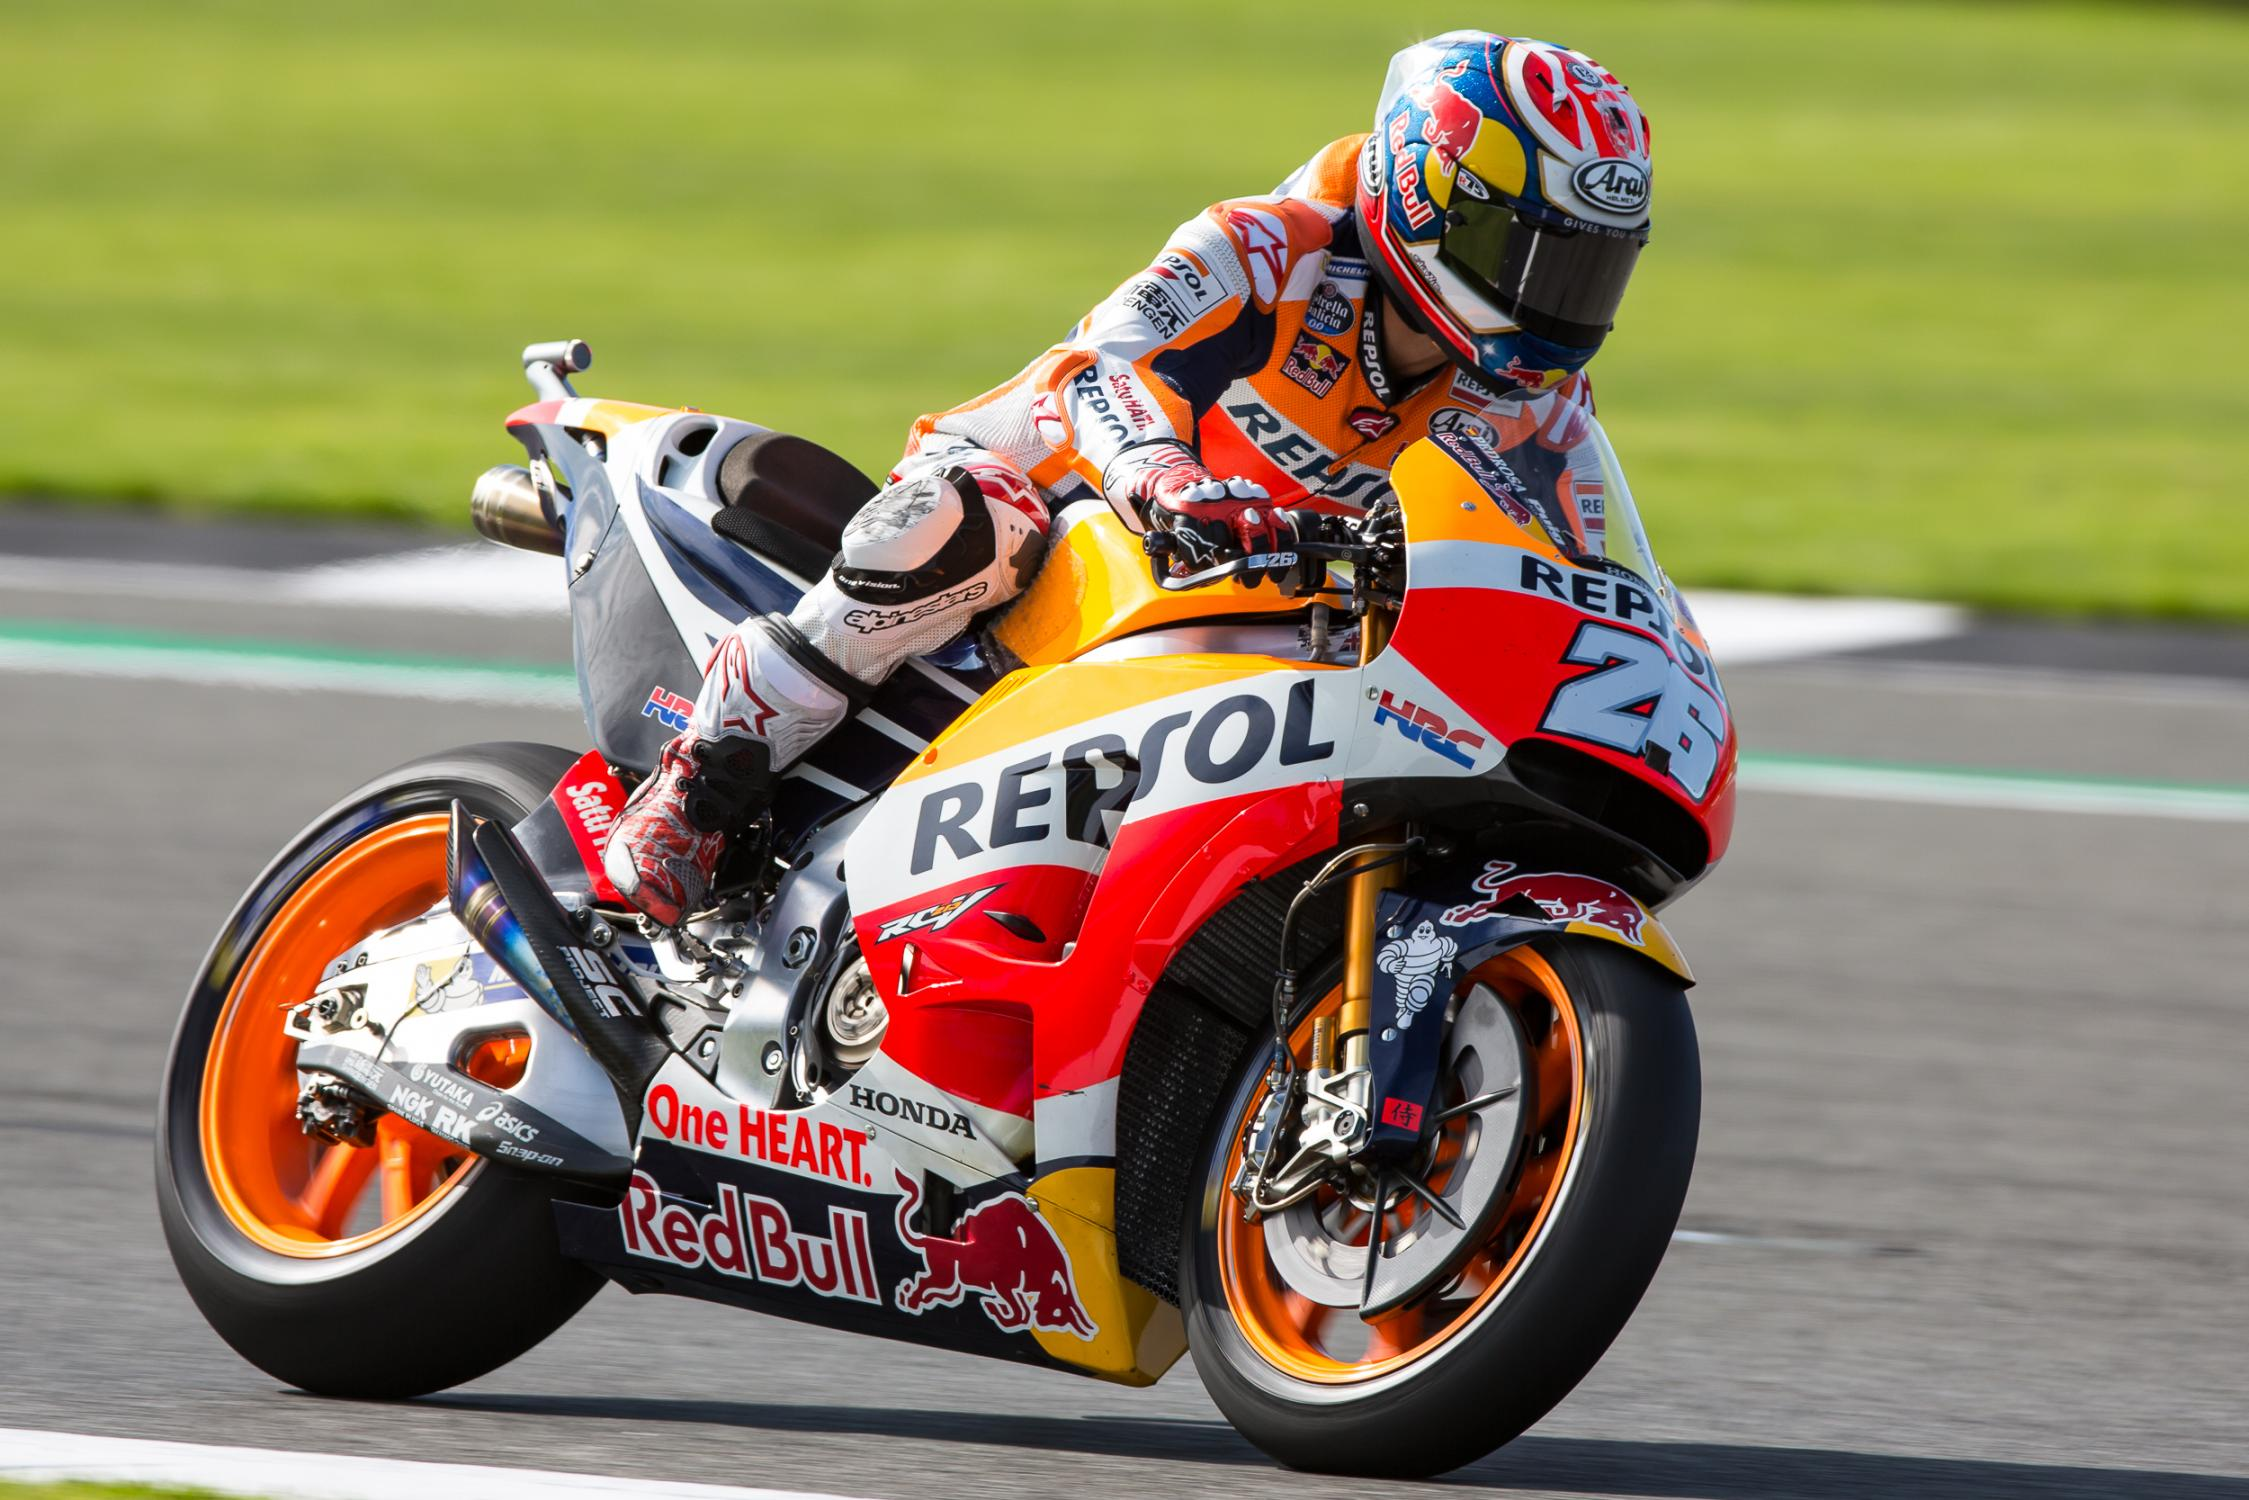 26-dani-pedrosa-esp_gp_2876.gallery_full_top_fullscreen.jpg